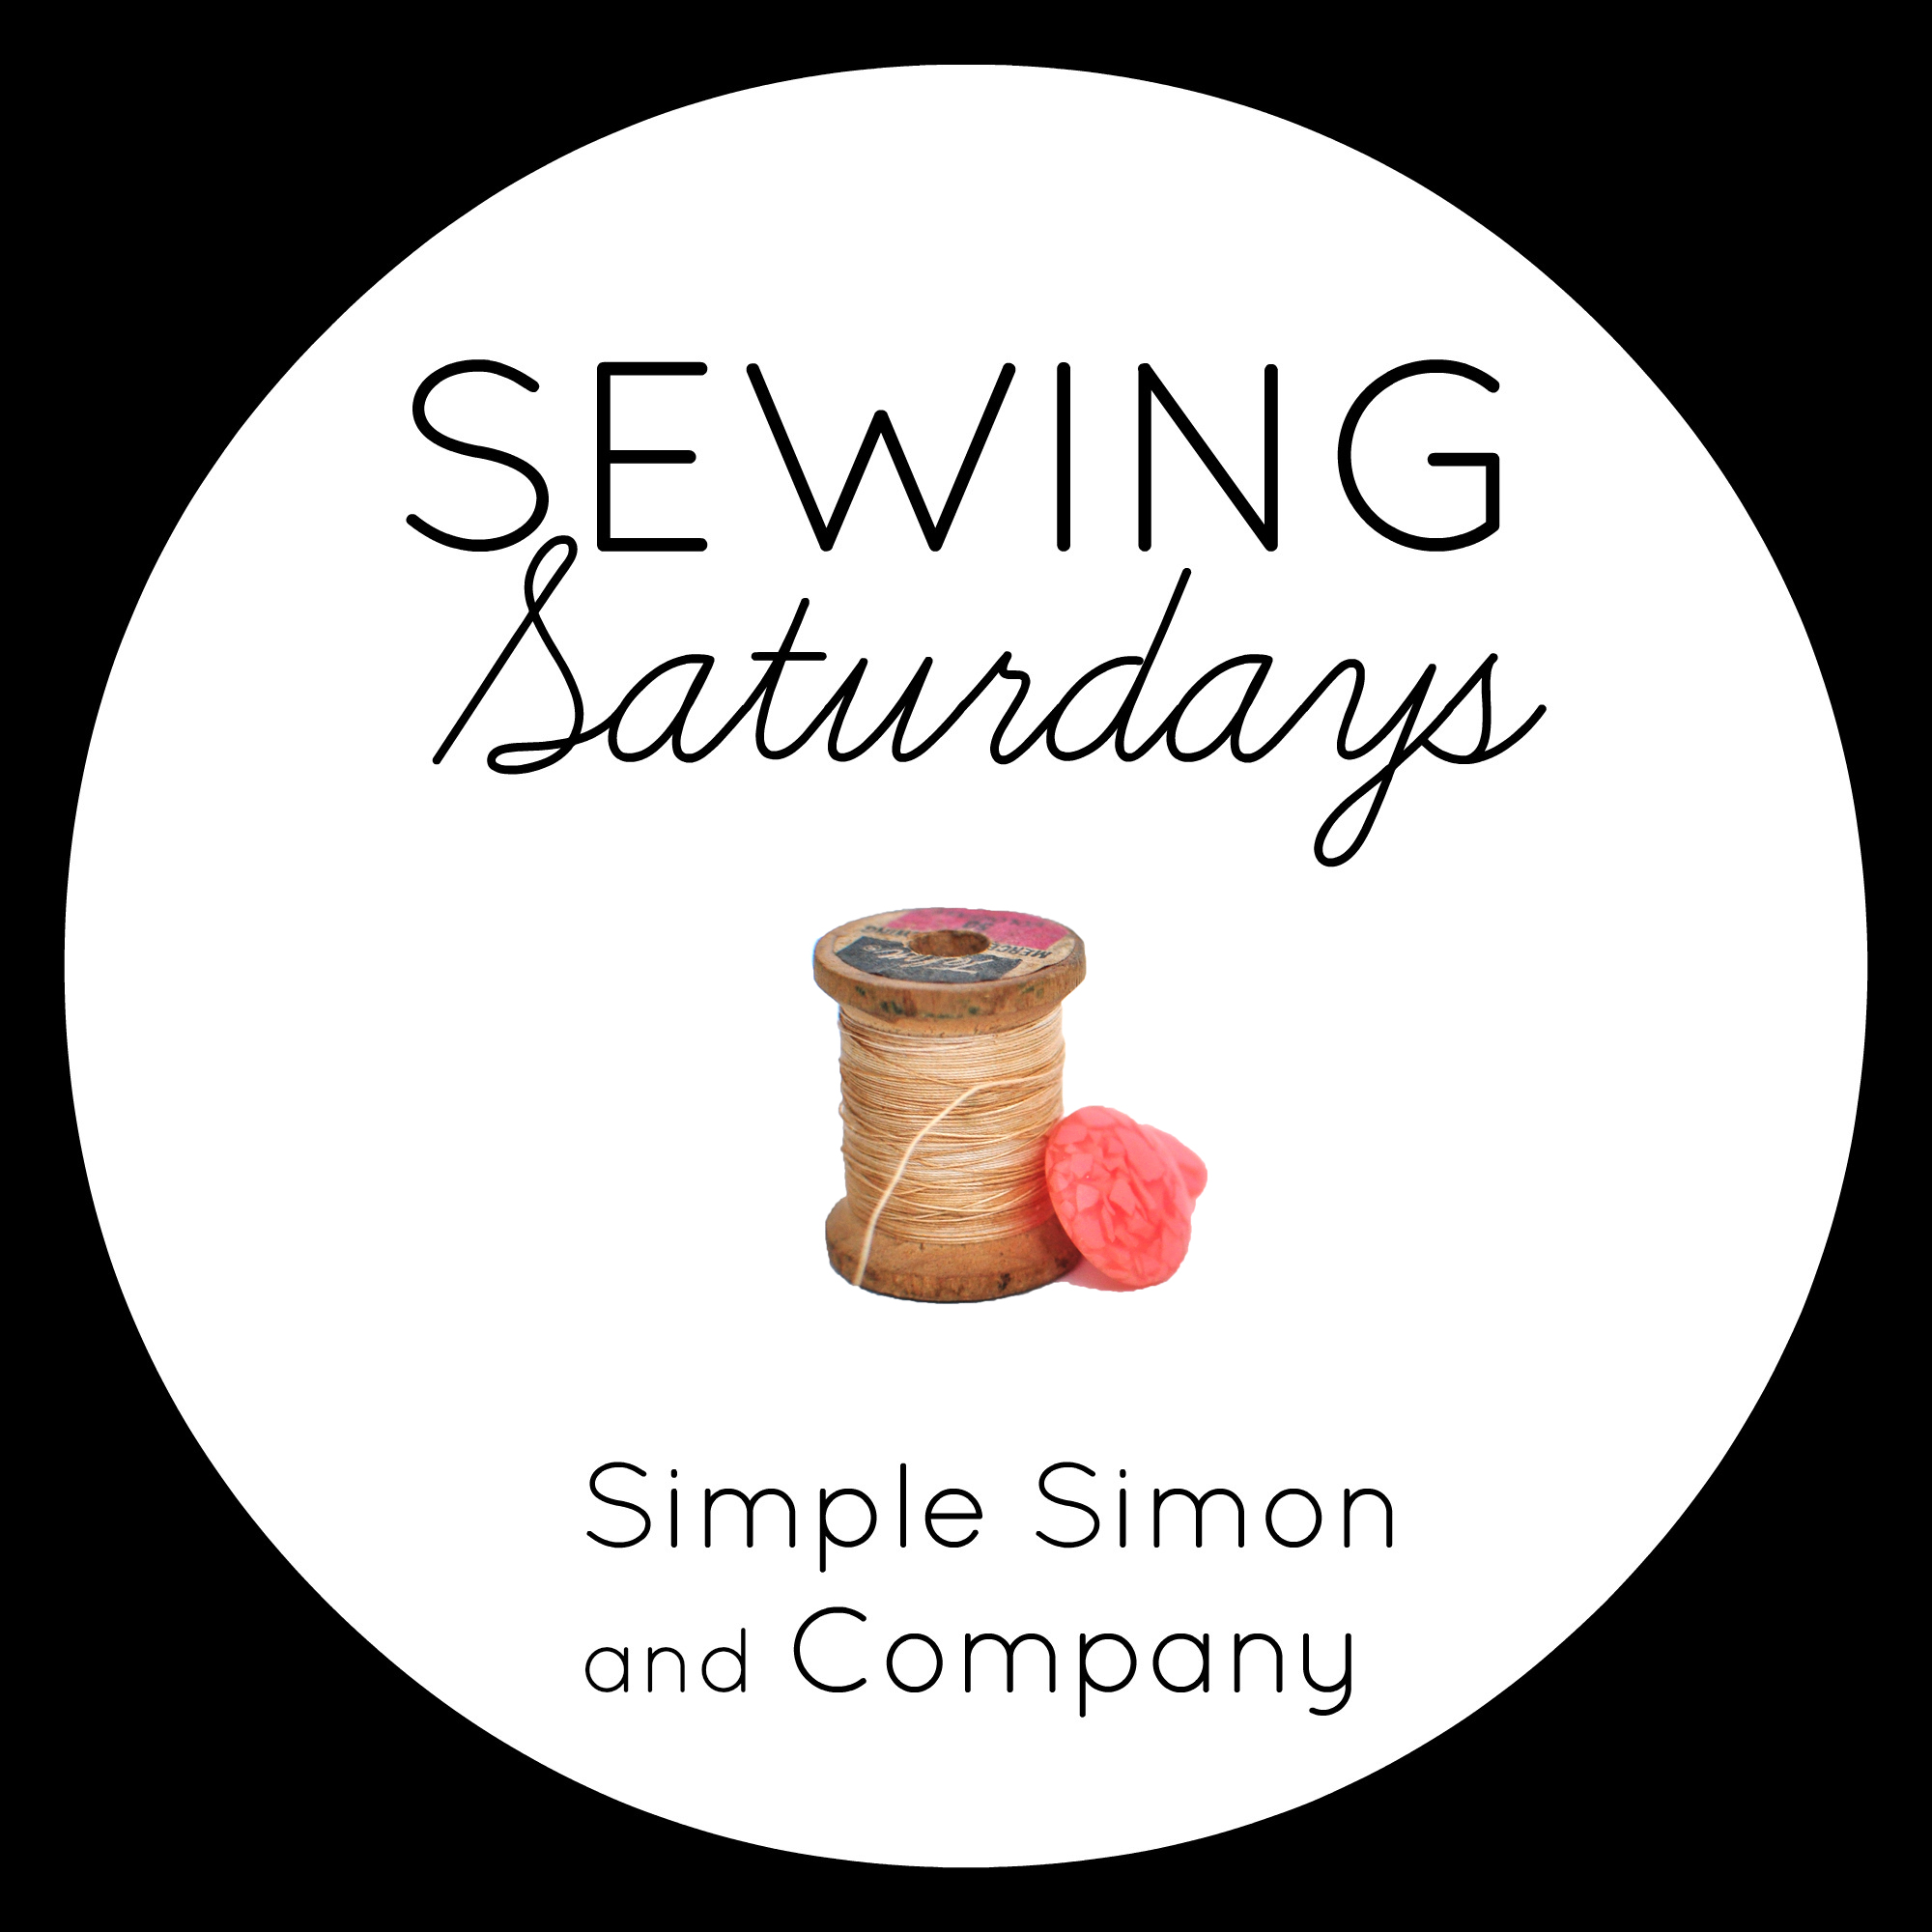 http://www.simplesimonandco.com/wp-content/uploads/2014/05/sewing-saturday-button-real_edited-1.jpg